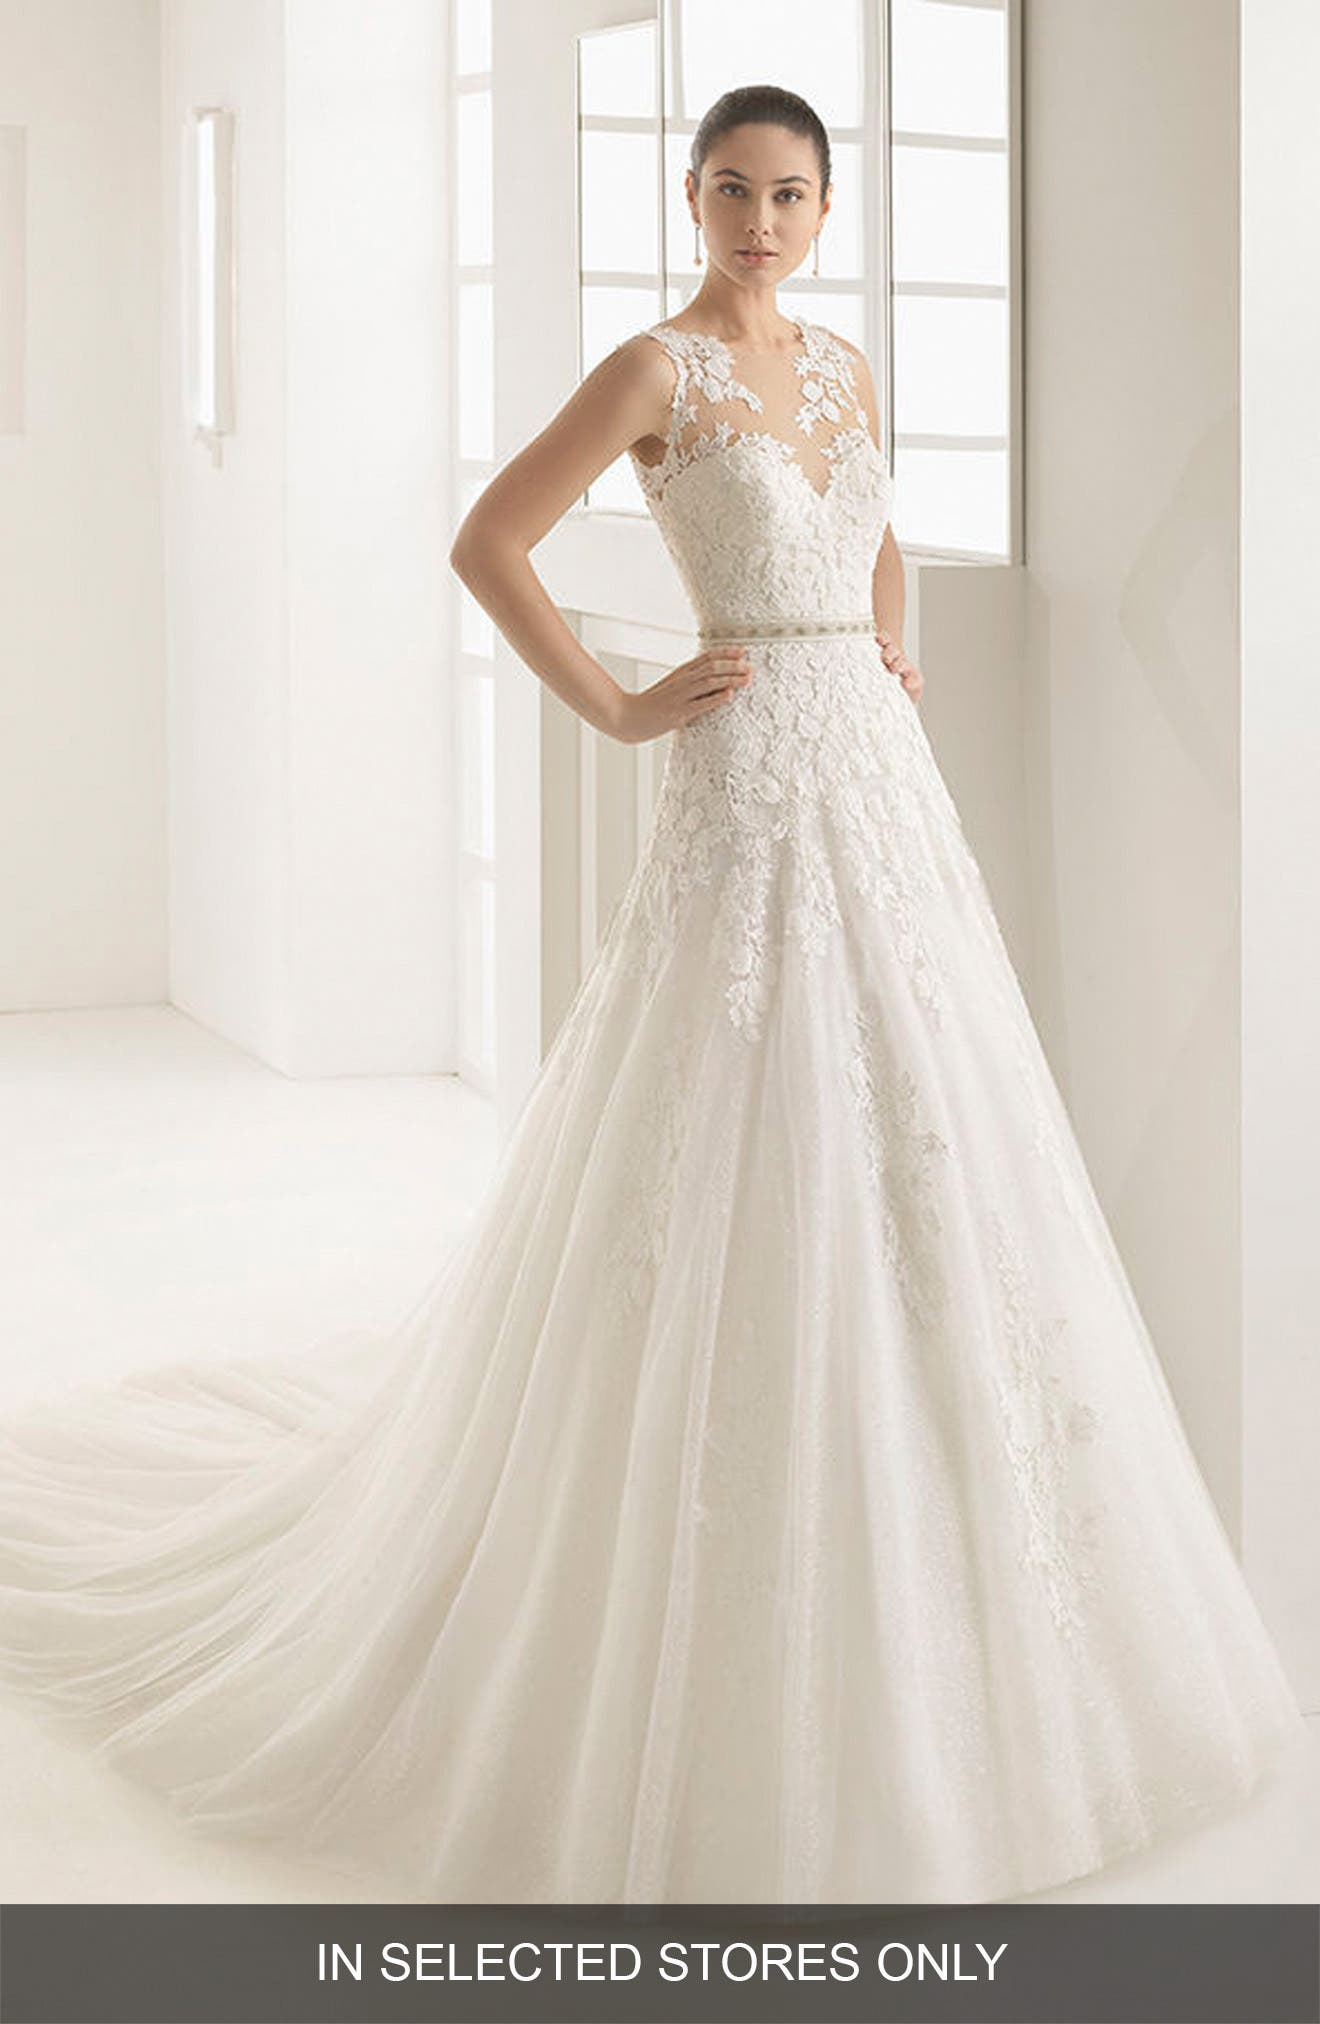 Alternate Image 1 Selected - Rosa Clara Oda Sleeveless Lace & Tulle Gown